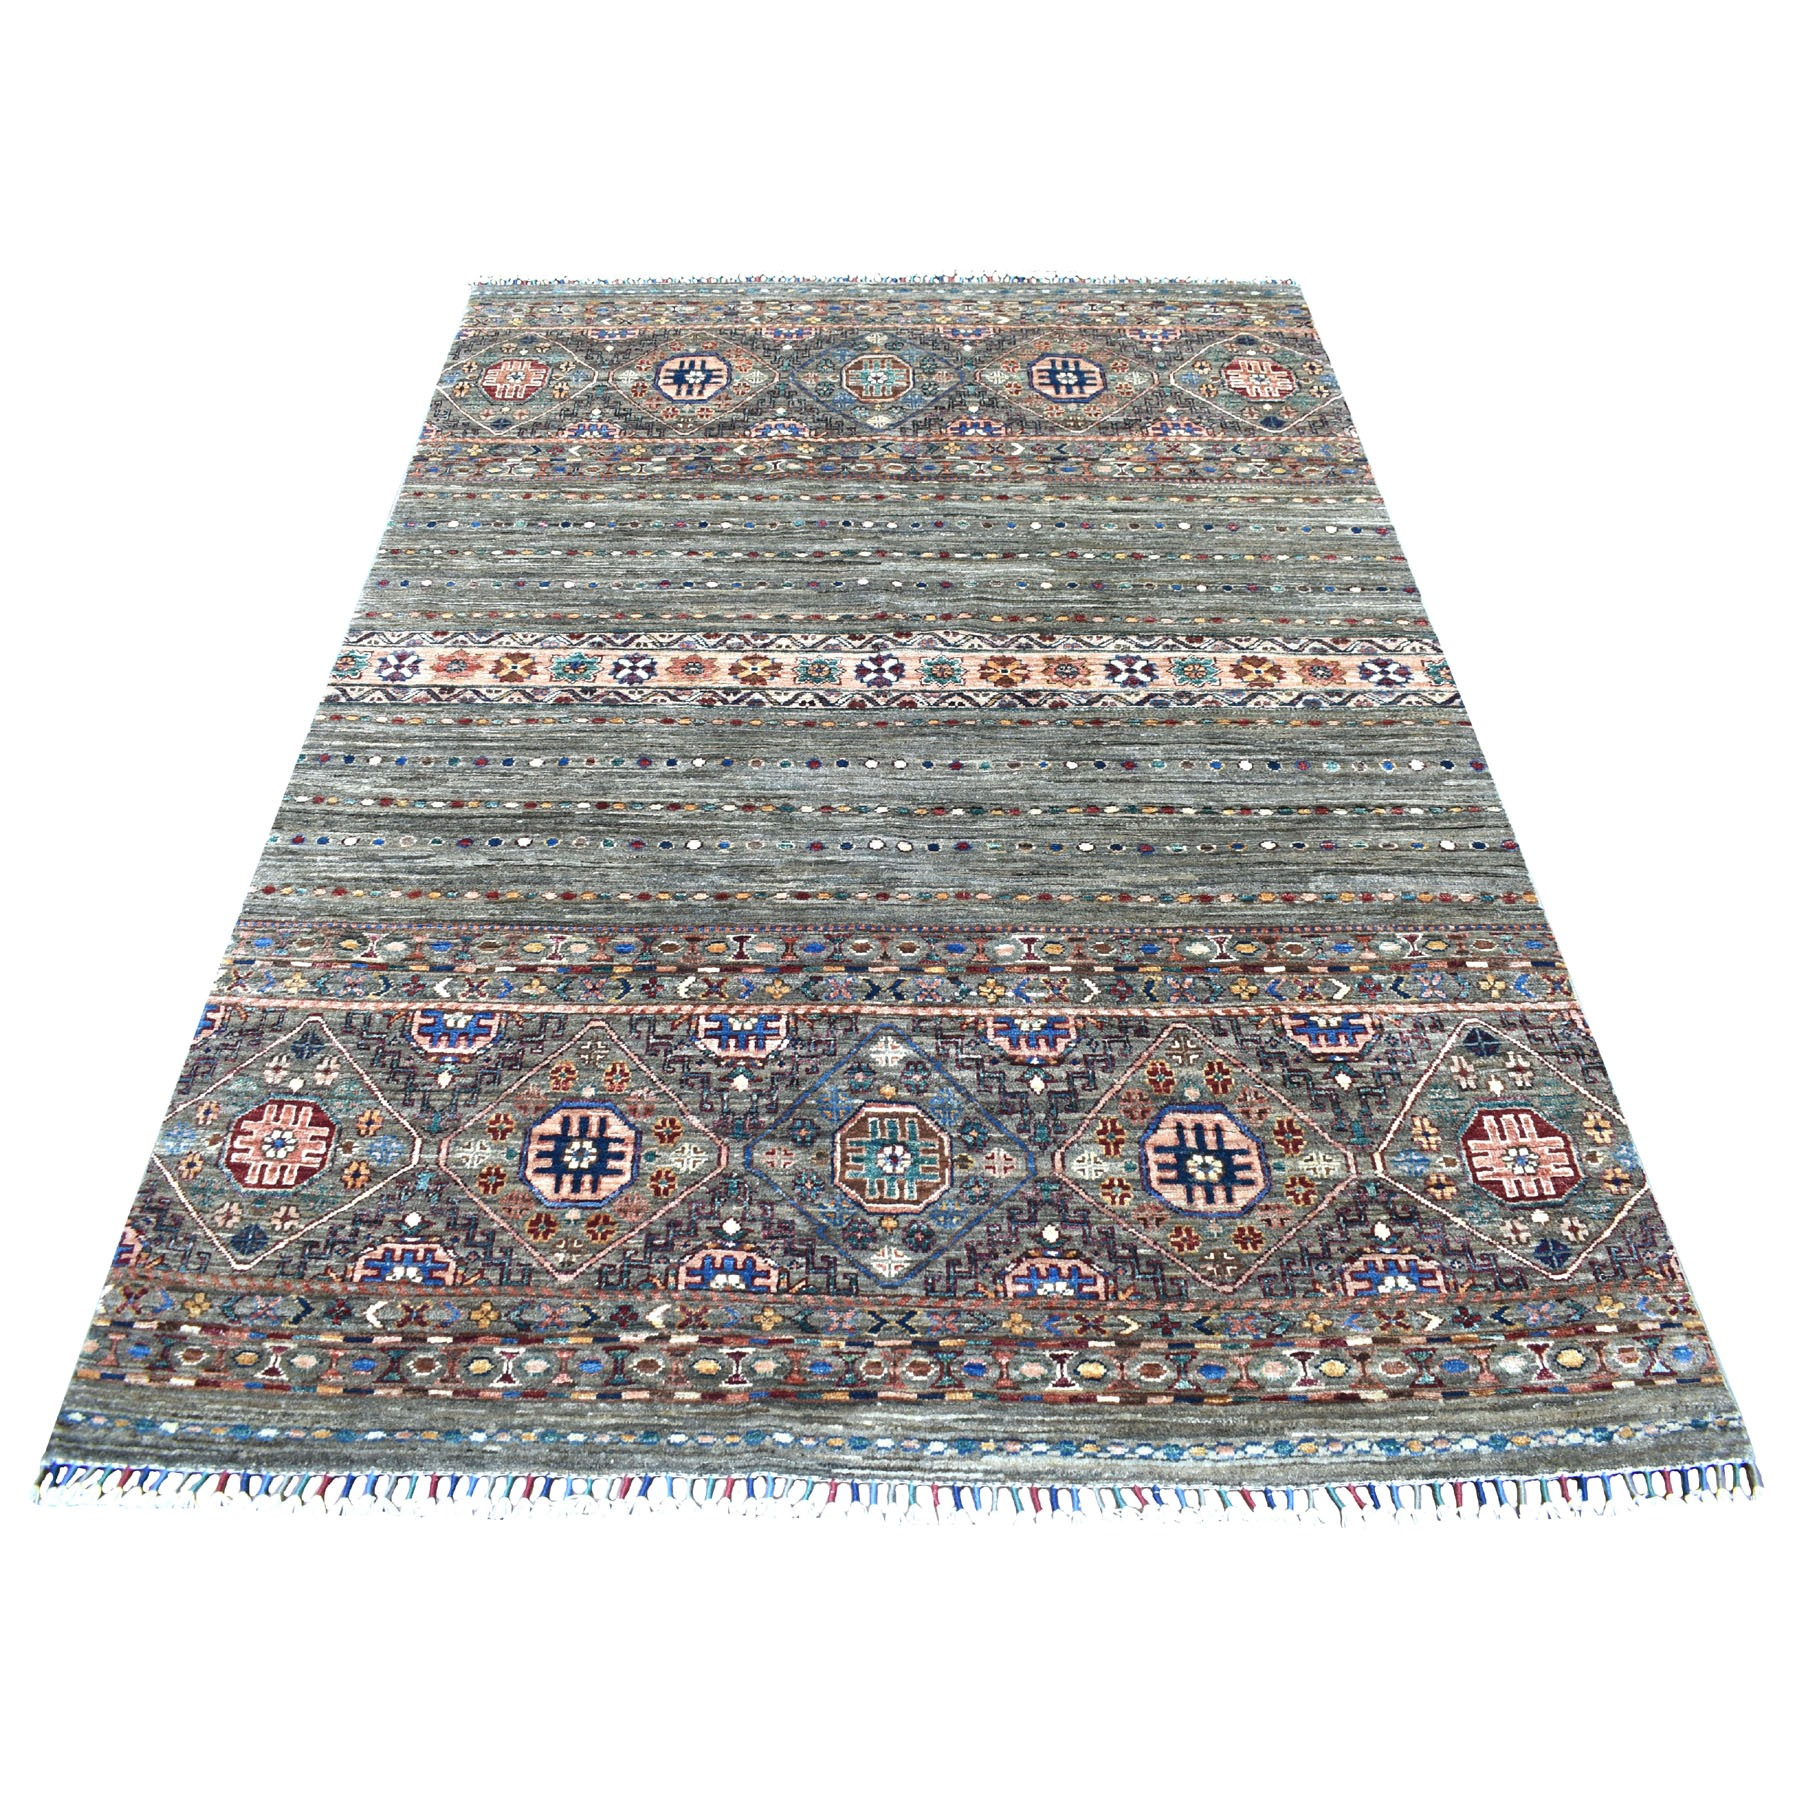 "5'x7'2"" Gray With Colorful Tassles Hand Knotted Super Kazak Khorjin Design Natural Wool Ethnic Oriental Rug"